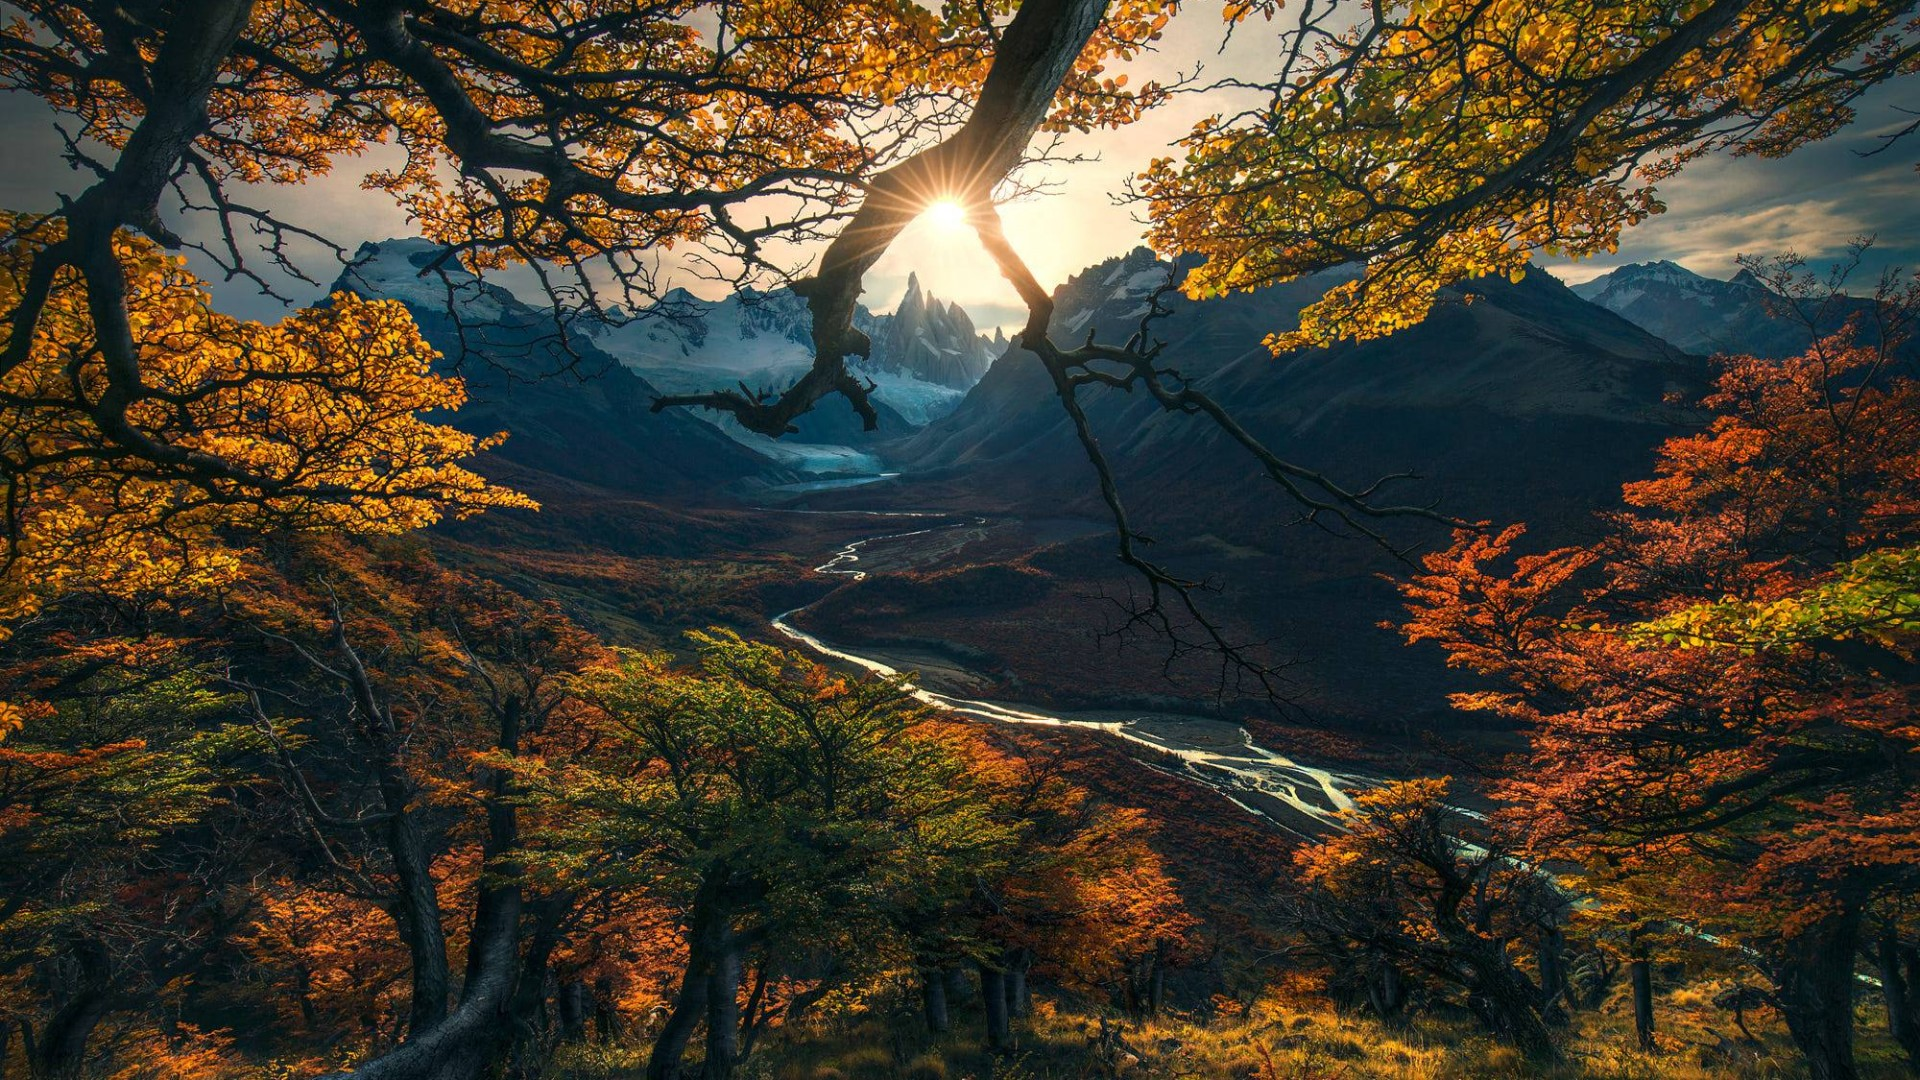 Wallpaper Forest, Tree, Mountains, Autumn, HD, Nature #15808